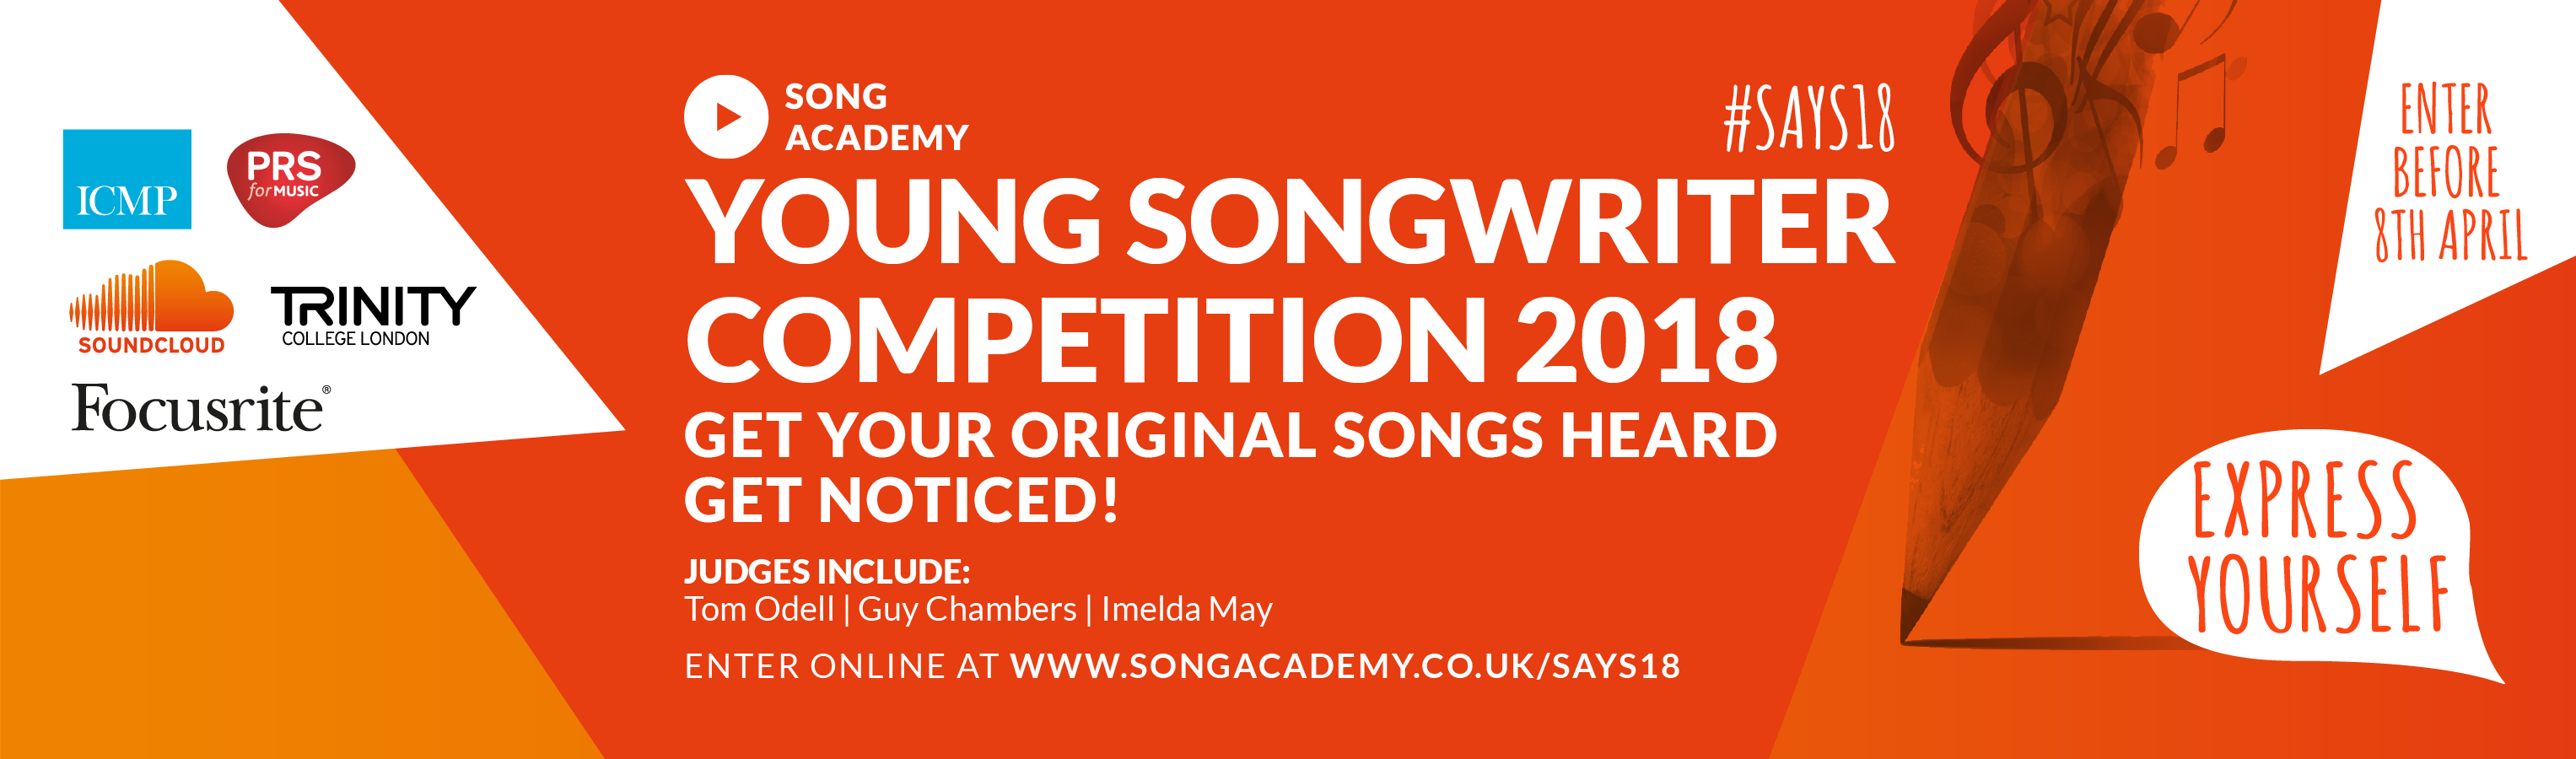 song academy young songwriting competition banner